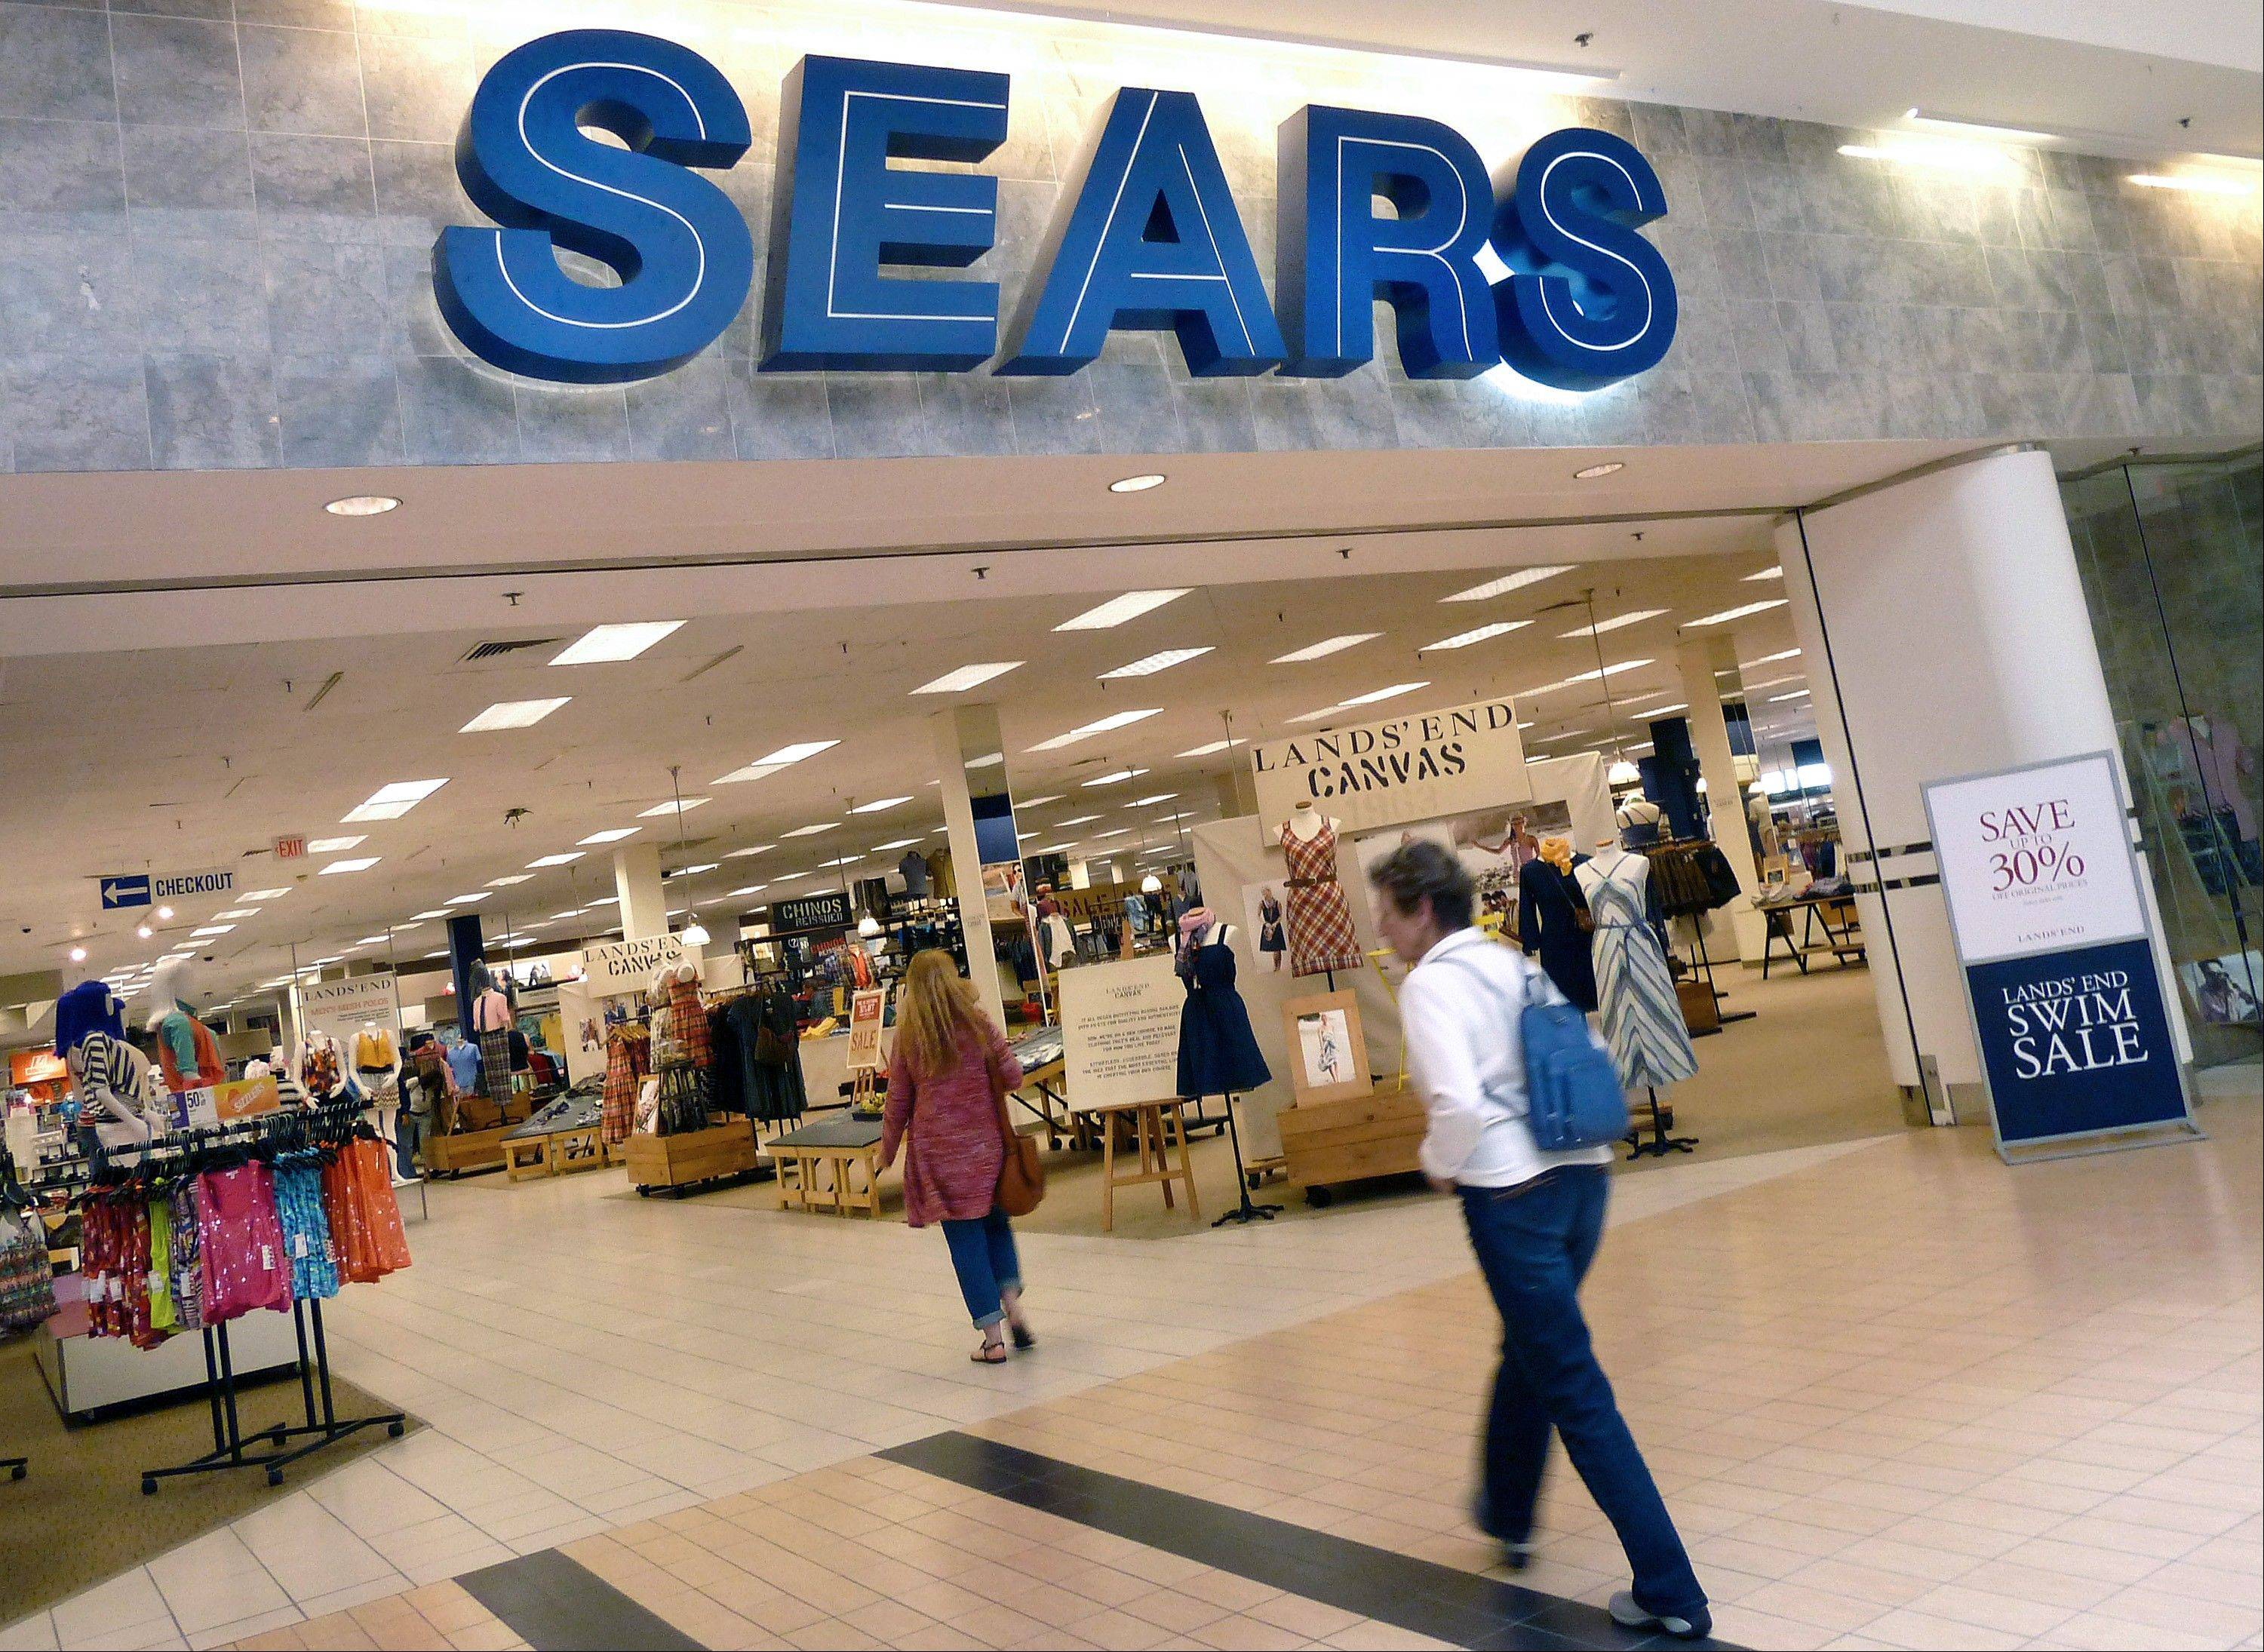 Sears is separating its Lands� End business from the rest of the company. Sears has spun off other businesses, including its Hometown and Sears Outlet stores, to raise cash.